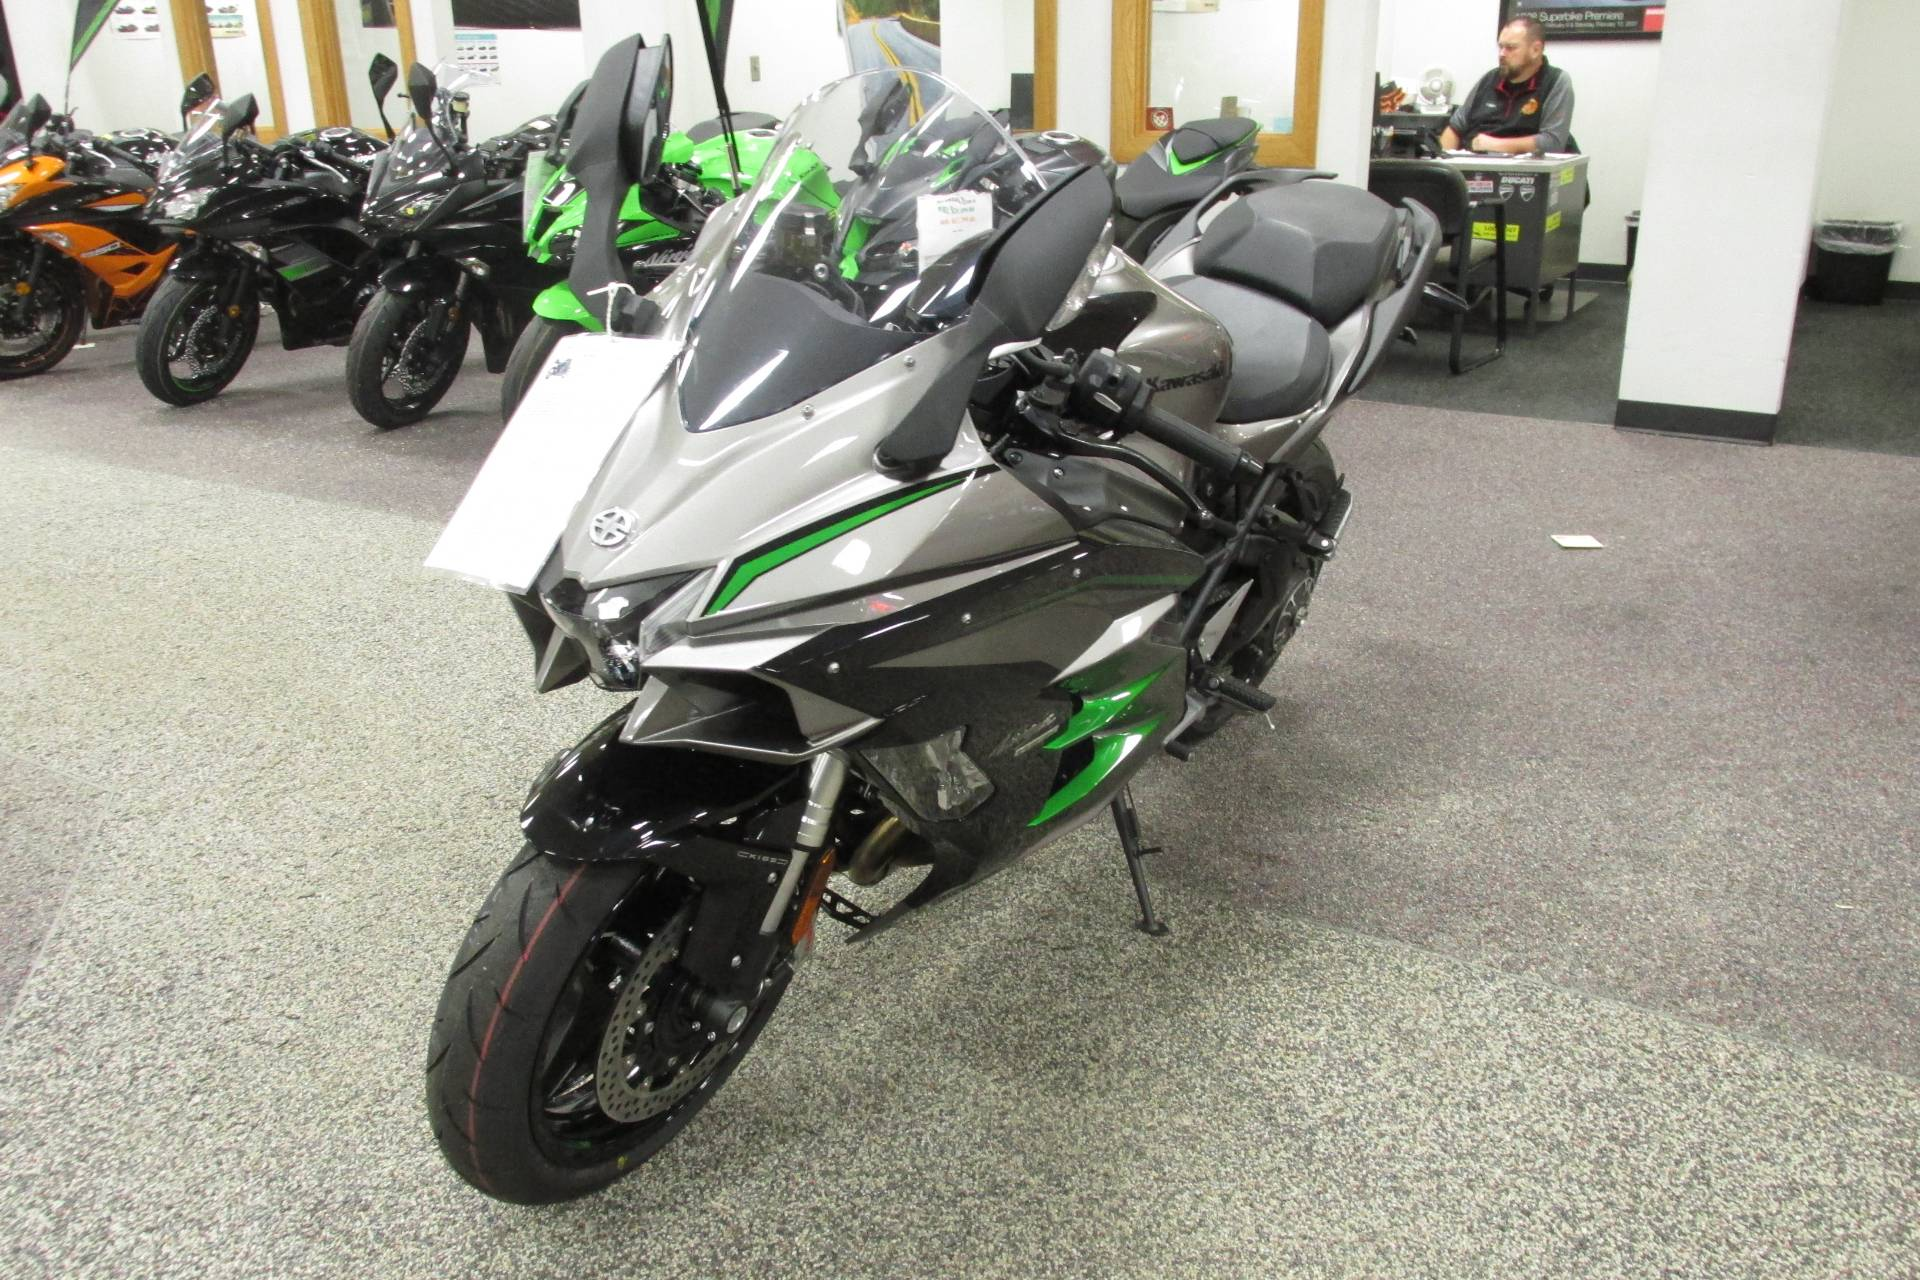 2019 Kawasaki NINJA H2 SX S.E. in Springfield, Ohio - Photo 4